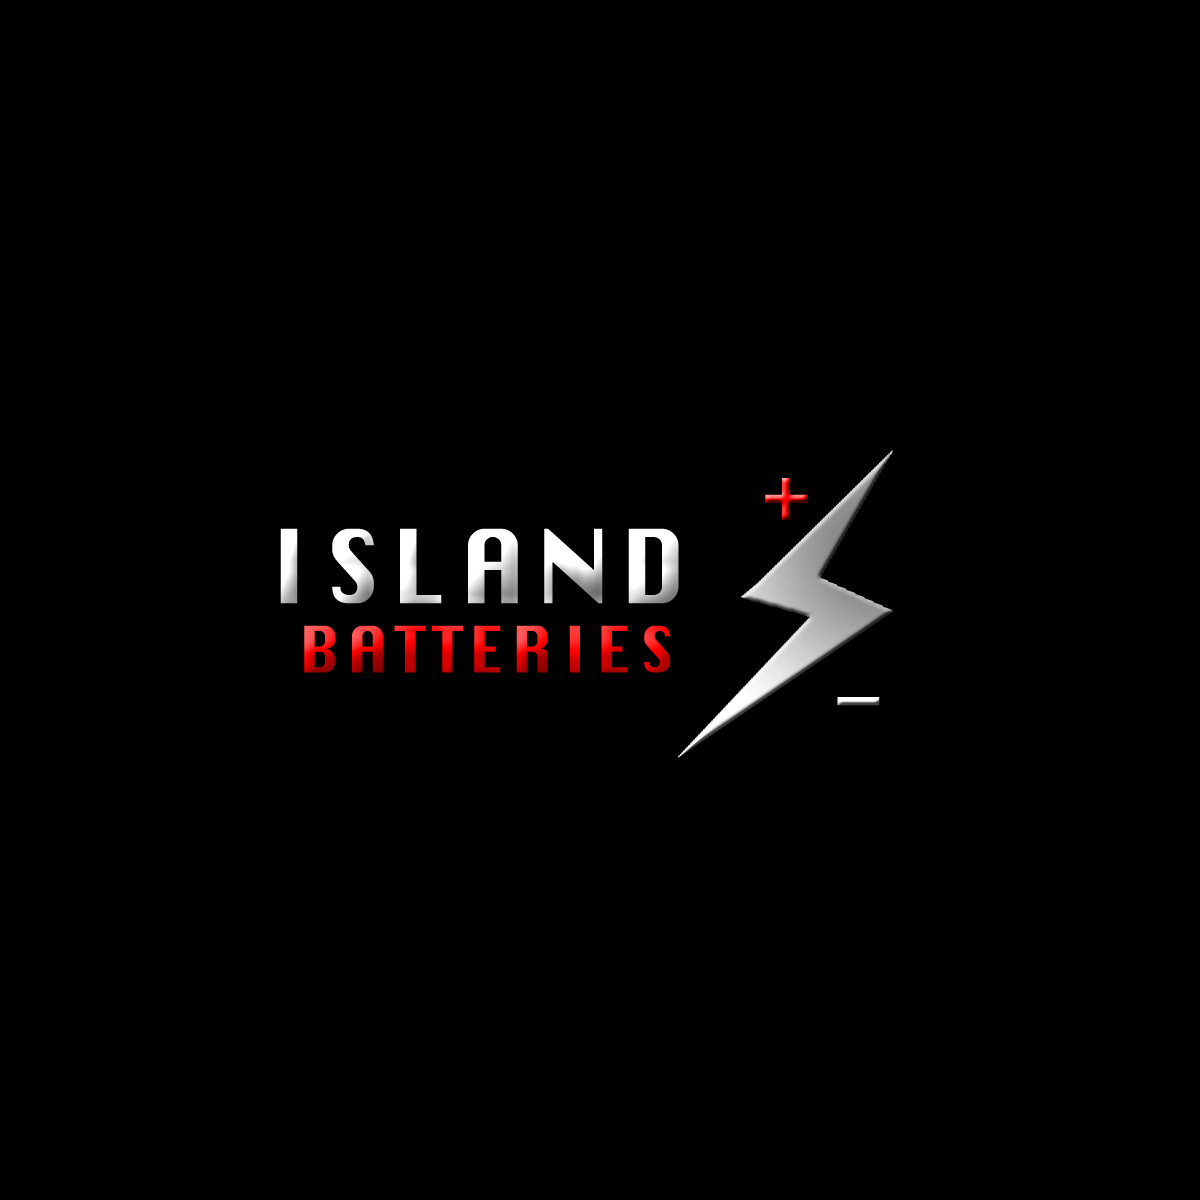 Logo Design by double-take - Entry No. 73 in the Logo Design Contest Fun Logo Design for Island Batteries.